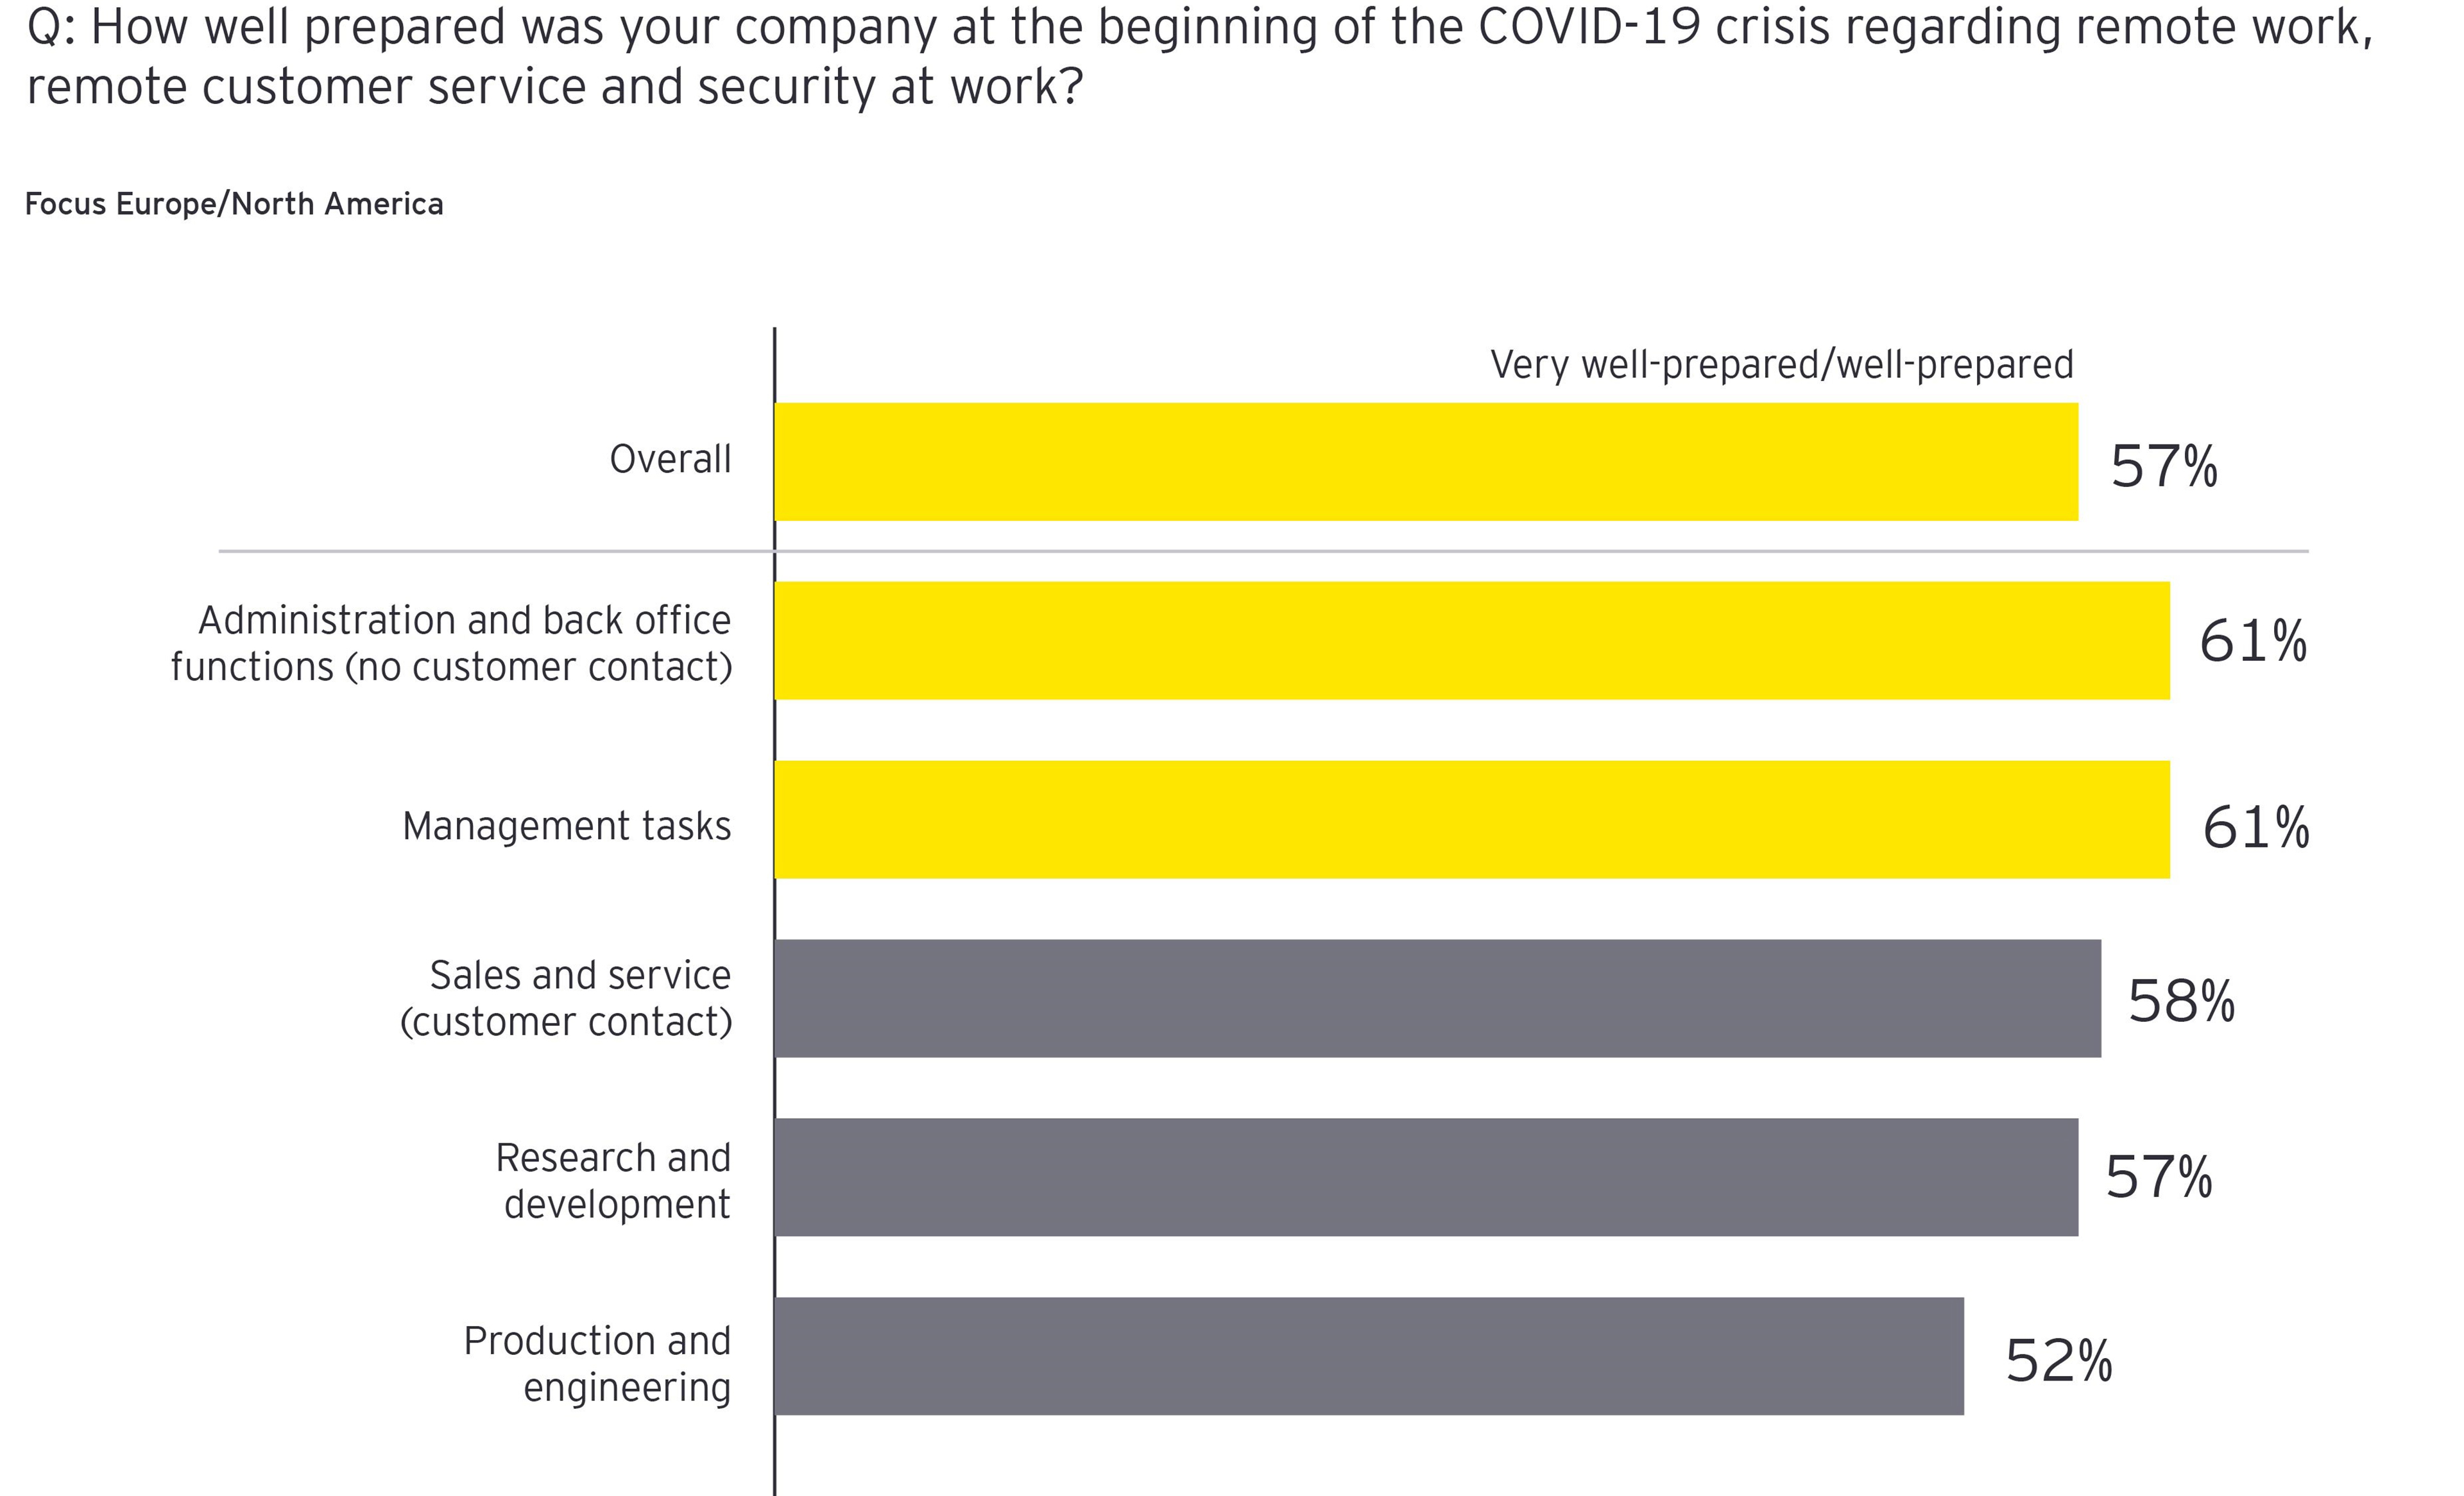 How well prepared was your company at the beginning of COVID-19 crisis regarding remote work